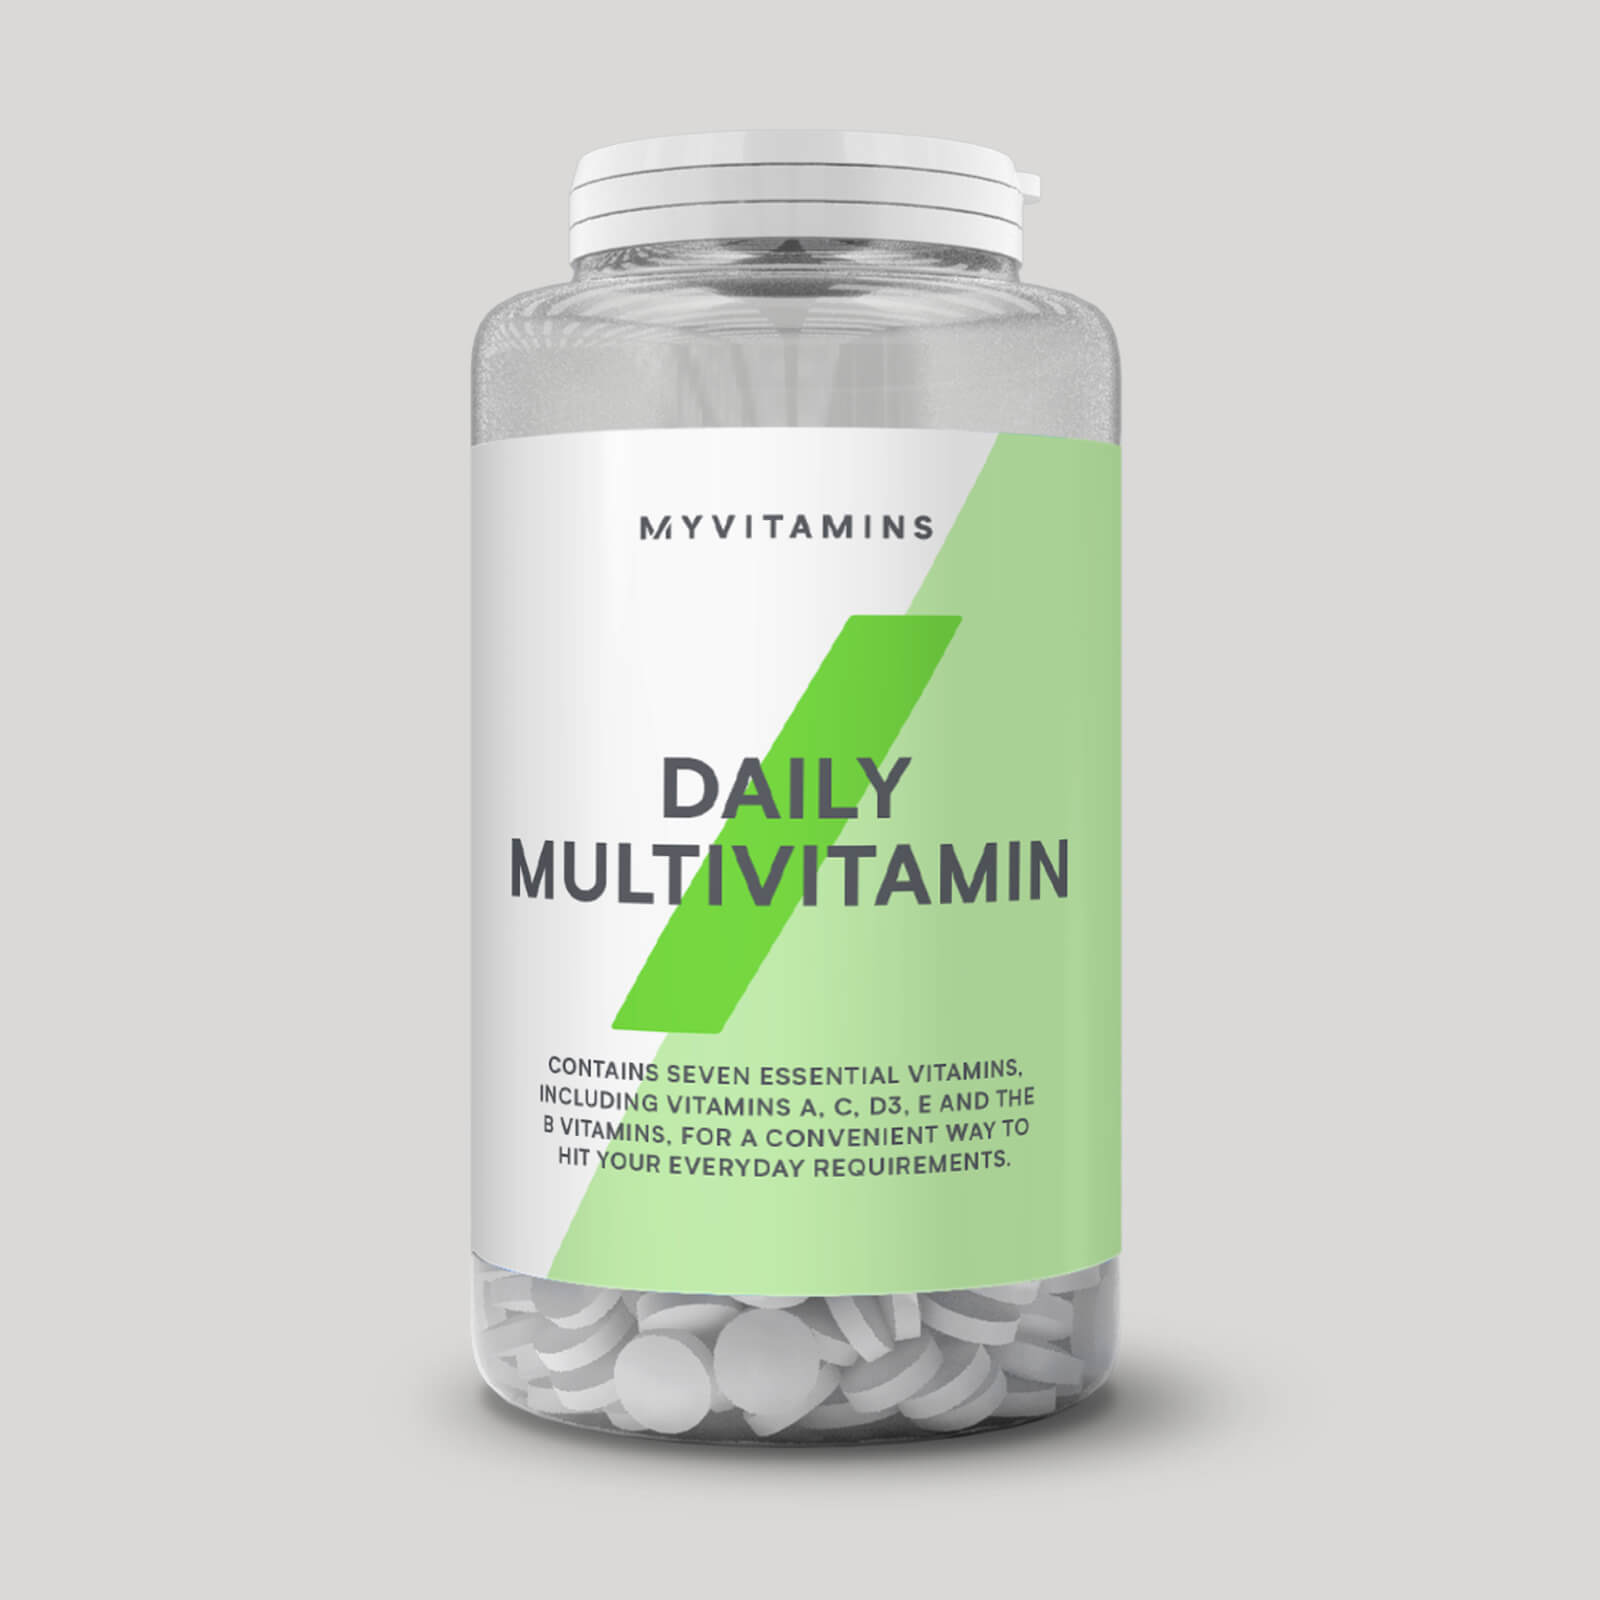 Daily Multivitamin